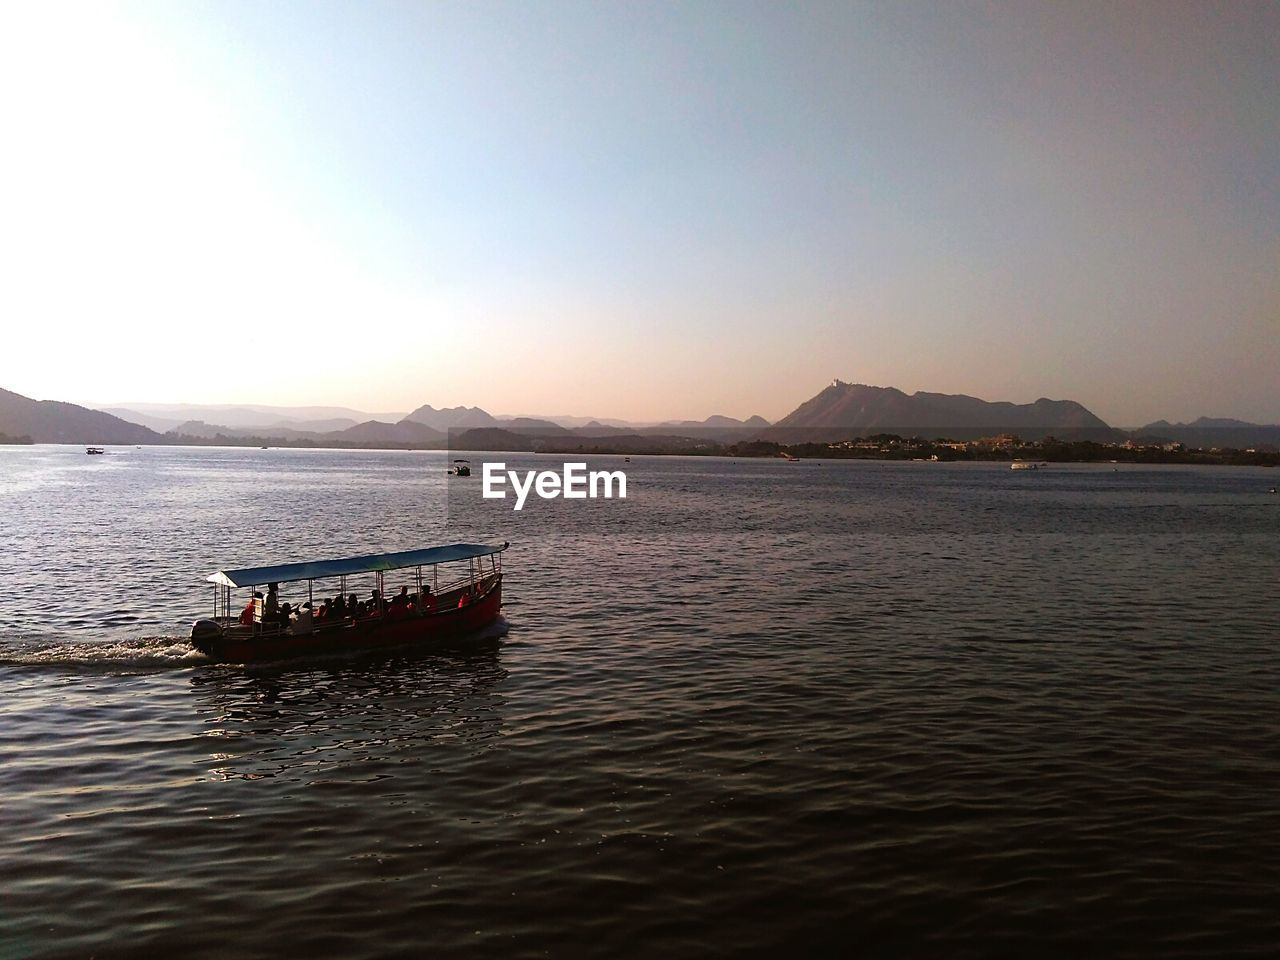 water, mountain, scenics, beauty in nature, transportation, nature, nautical vessel, tranquil scene, tranquility, copy space, waterfront, outdoors, clear sky, no people, sea, day, sky